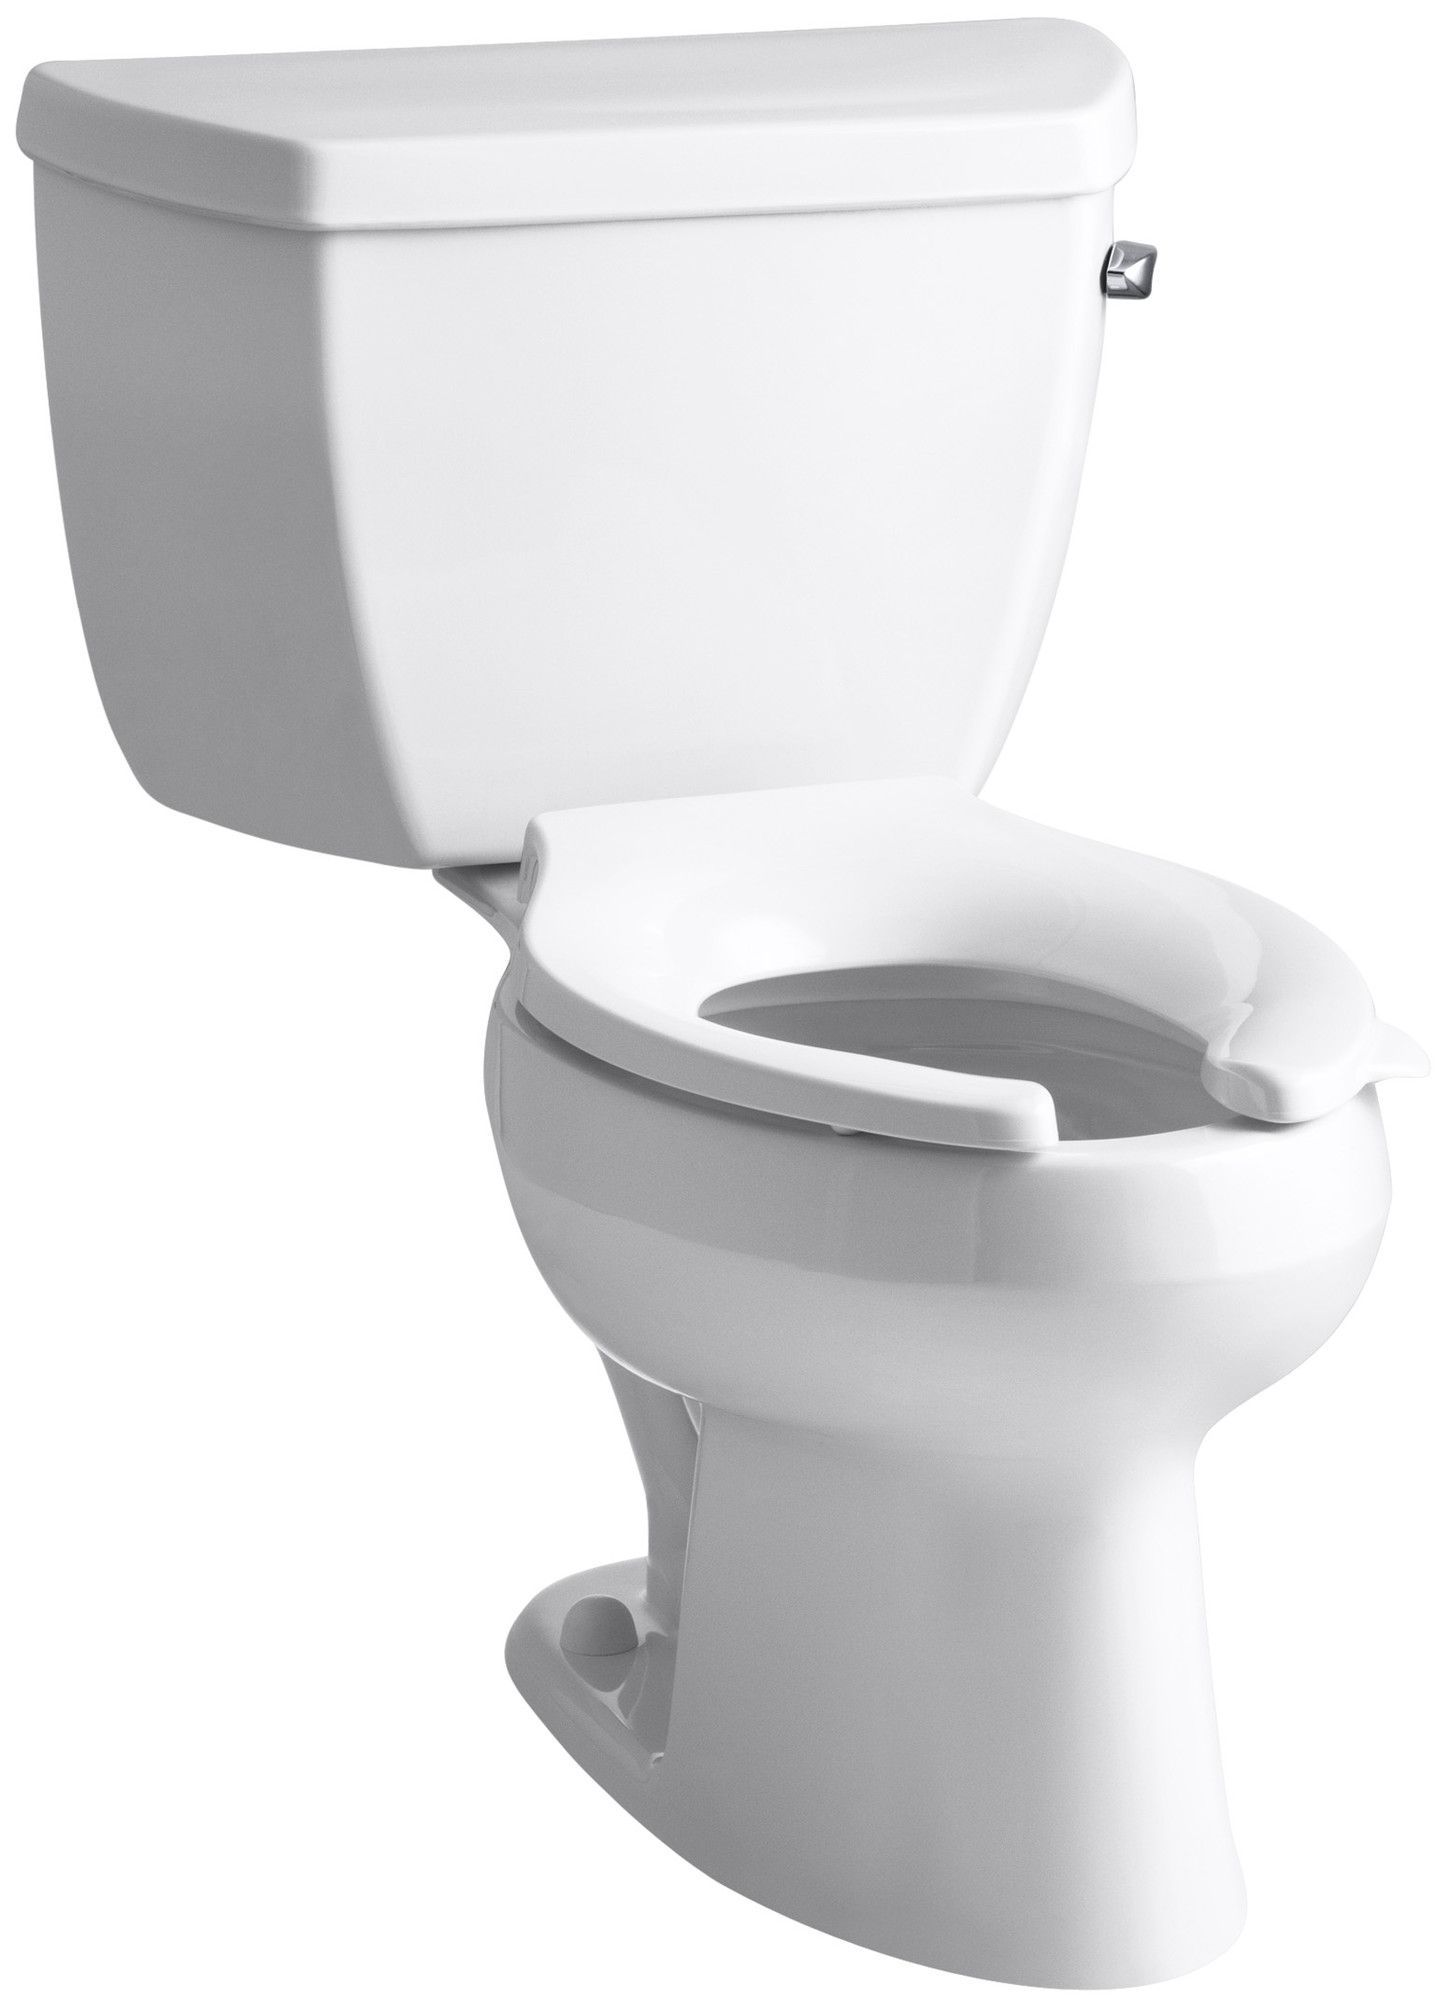 Wellworth 1 6 Gpf Elongated Two Piece Toilet Seat Not Included